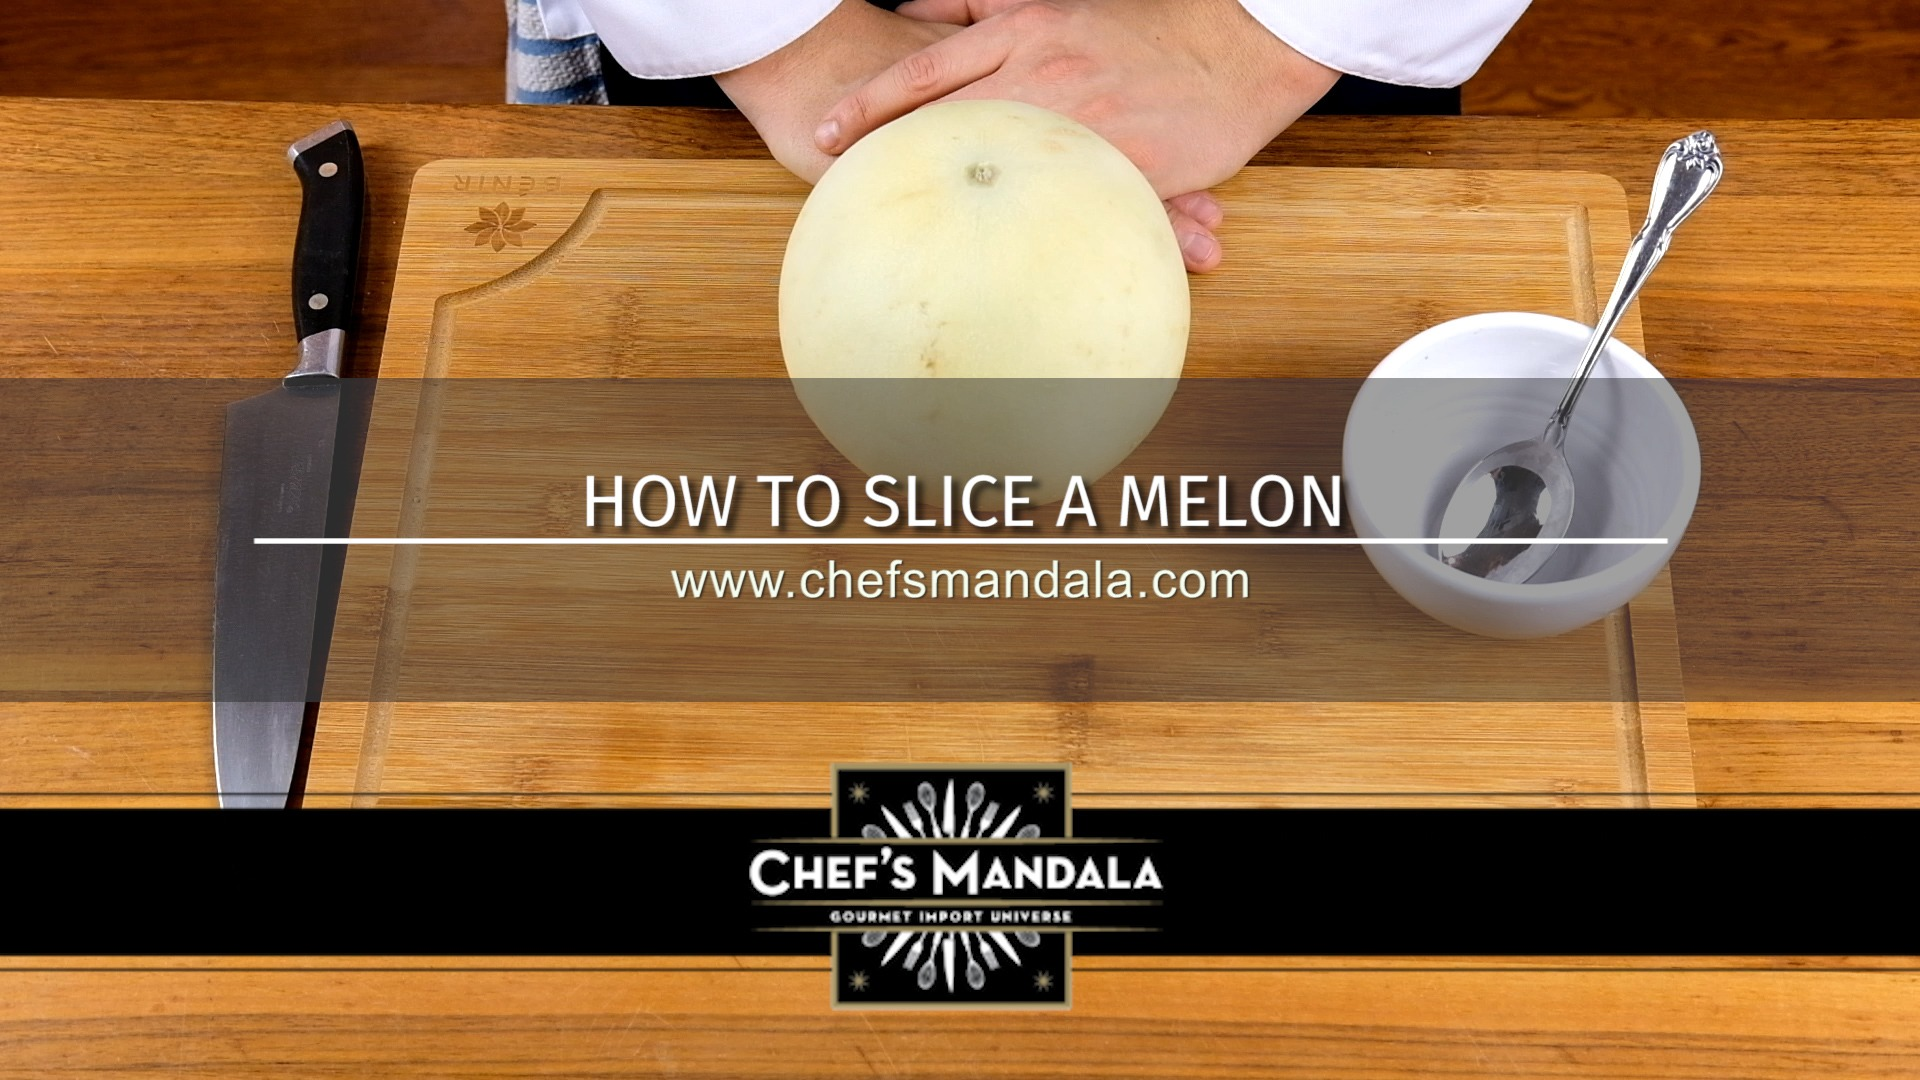 How to slice a melon